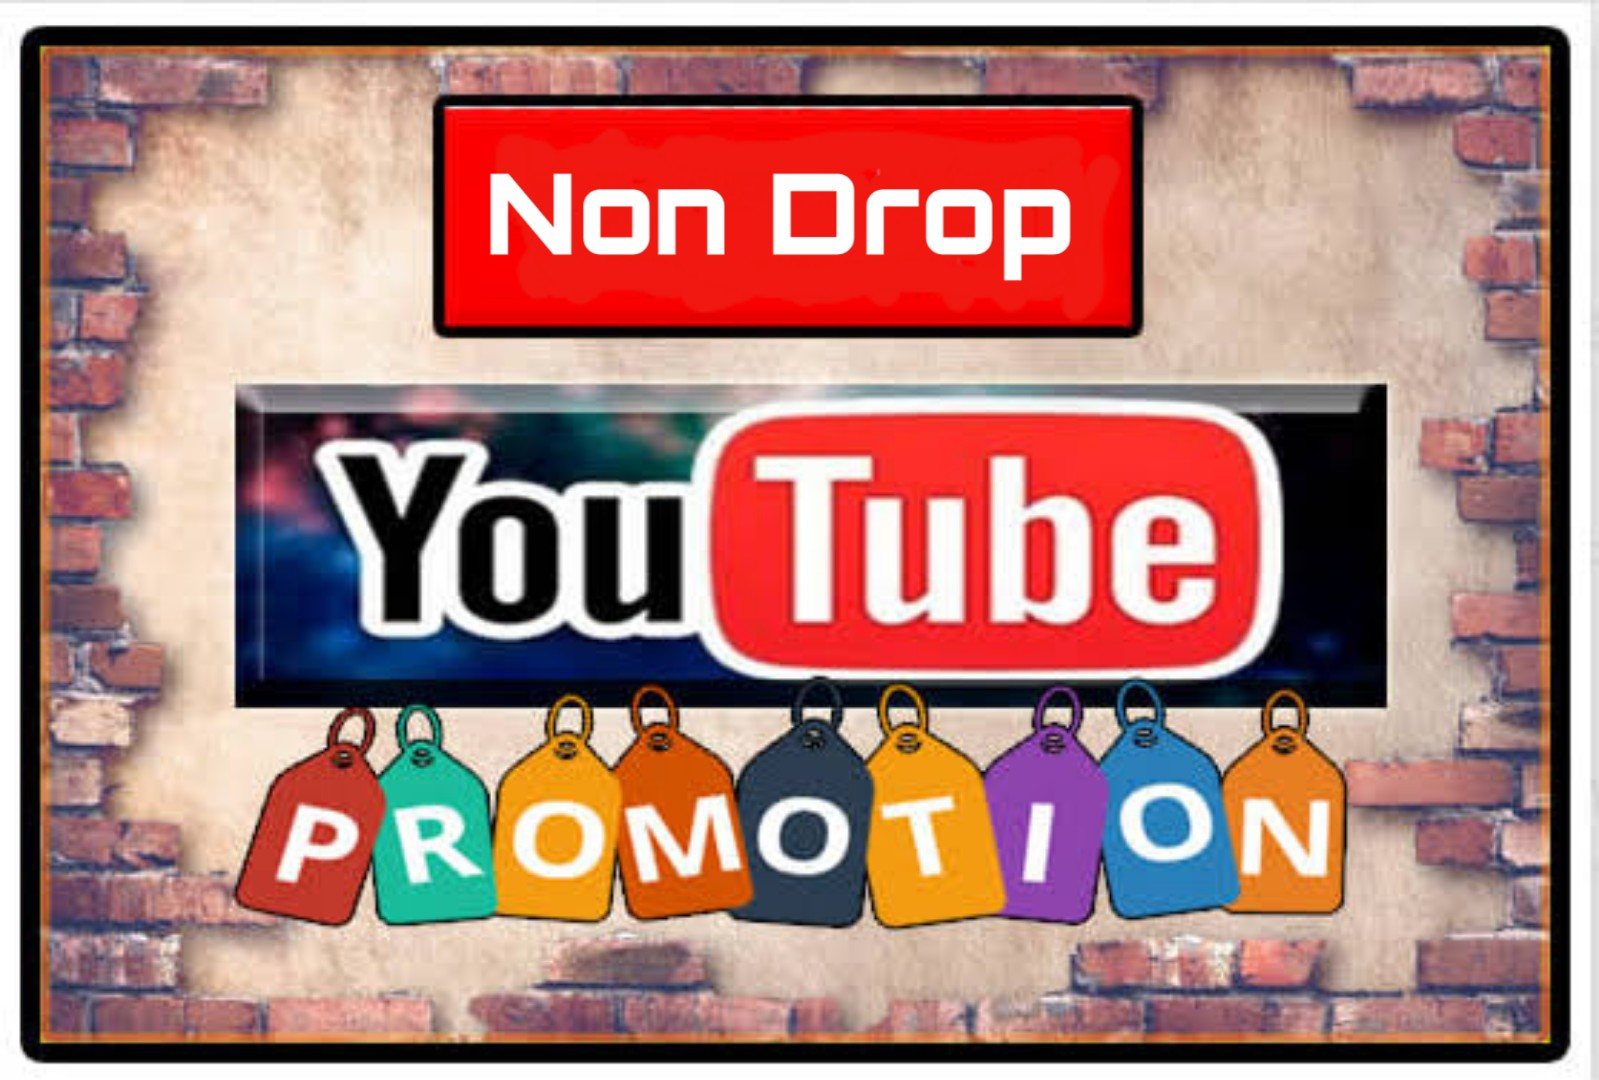 Youtube Marketing Promotion with Non Drop and Guaranteed